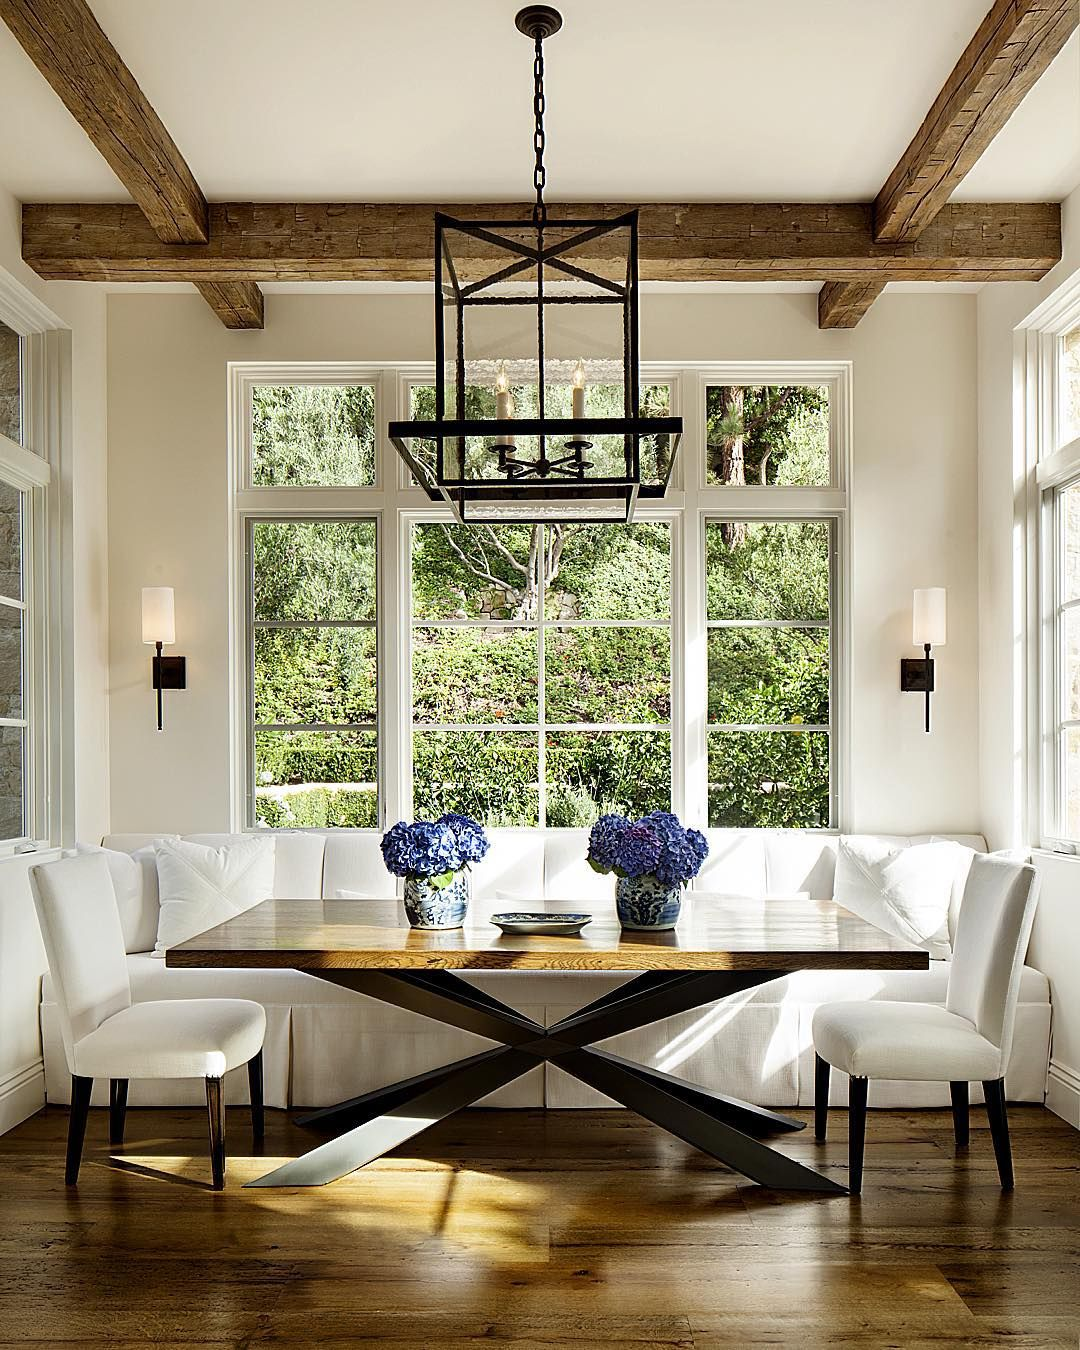 A custom table and a banquette make